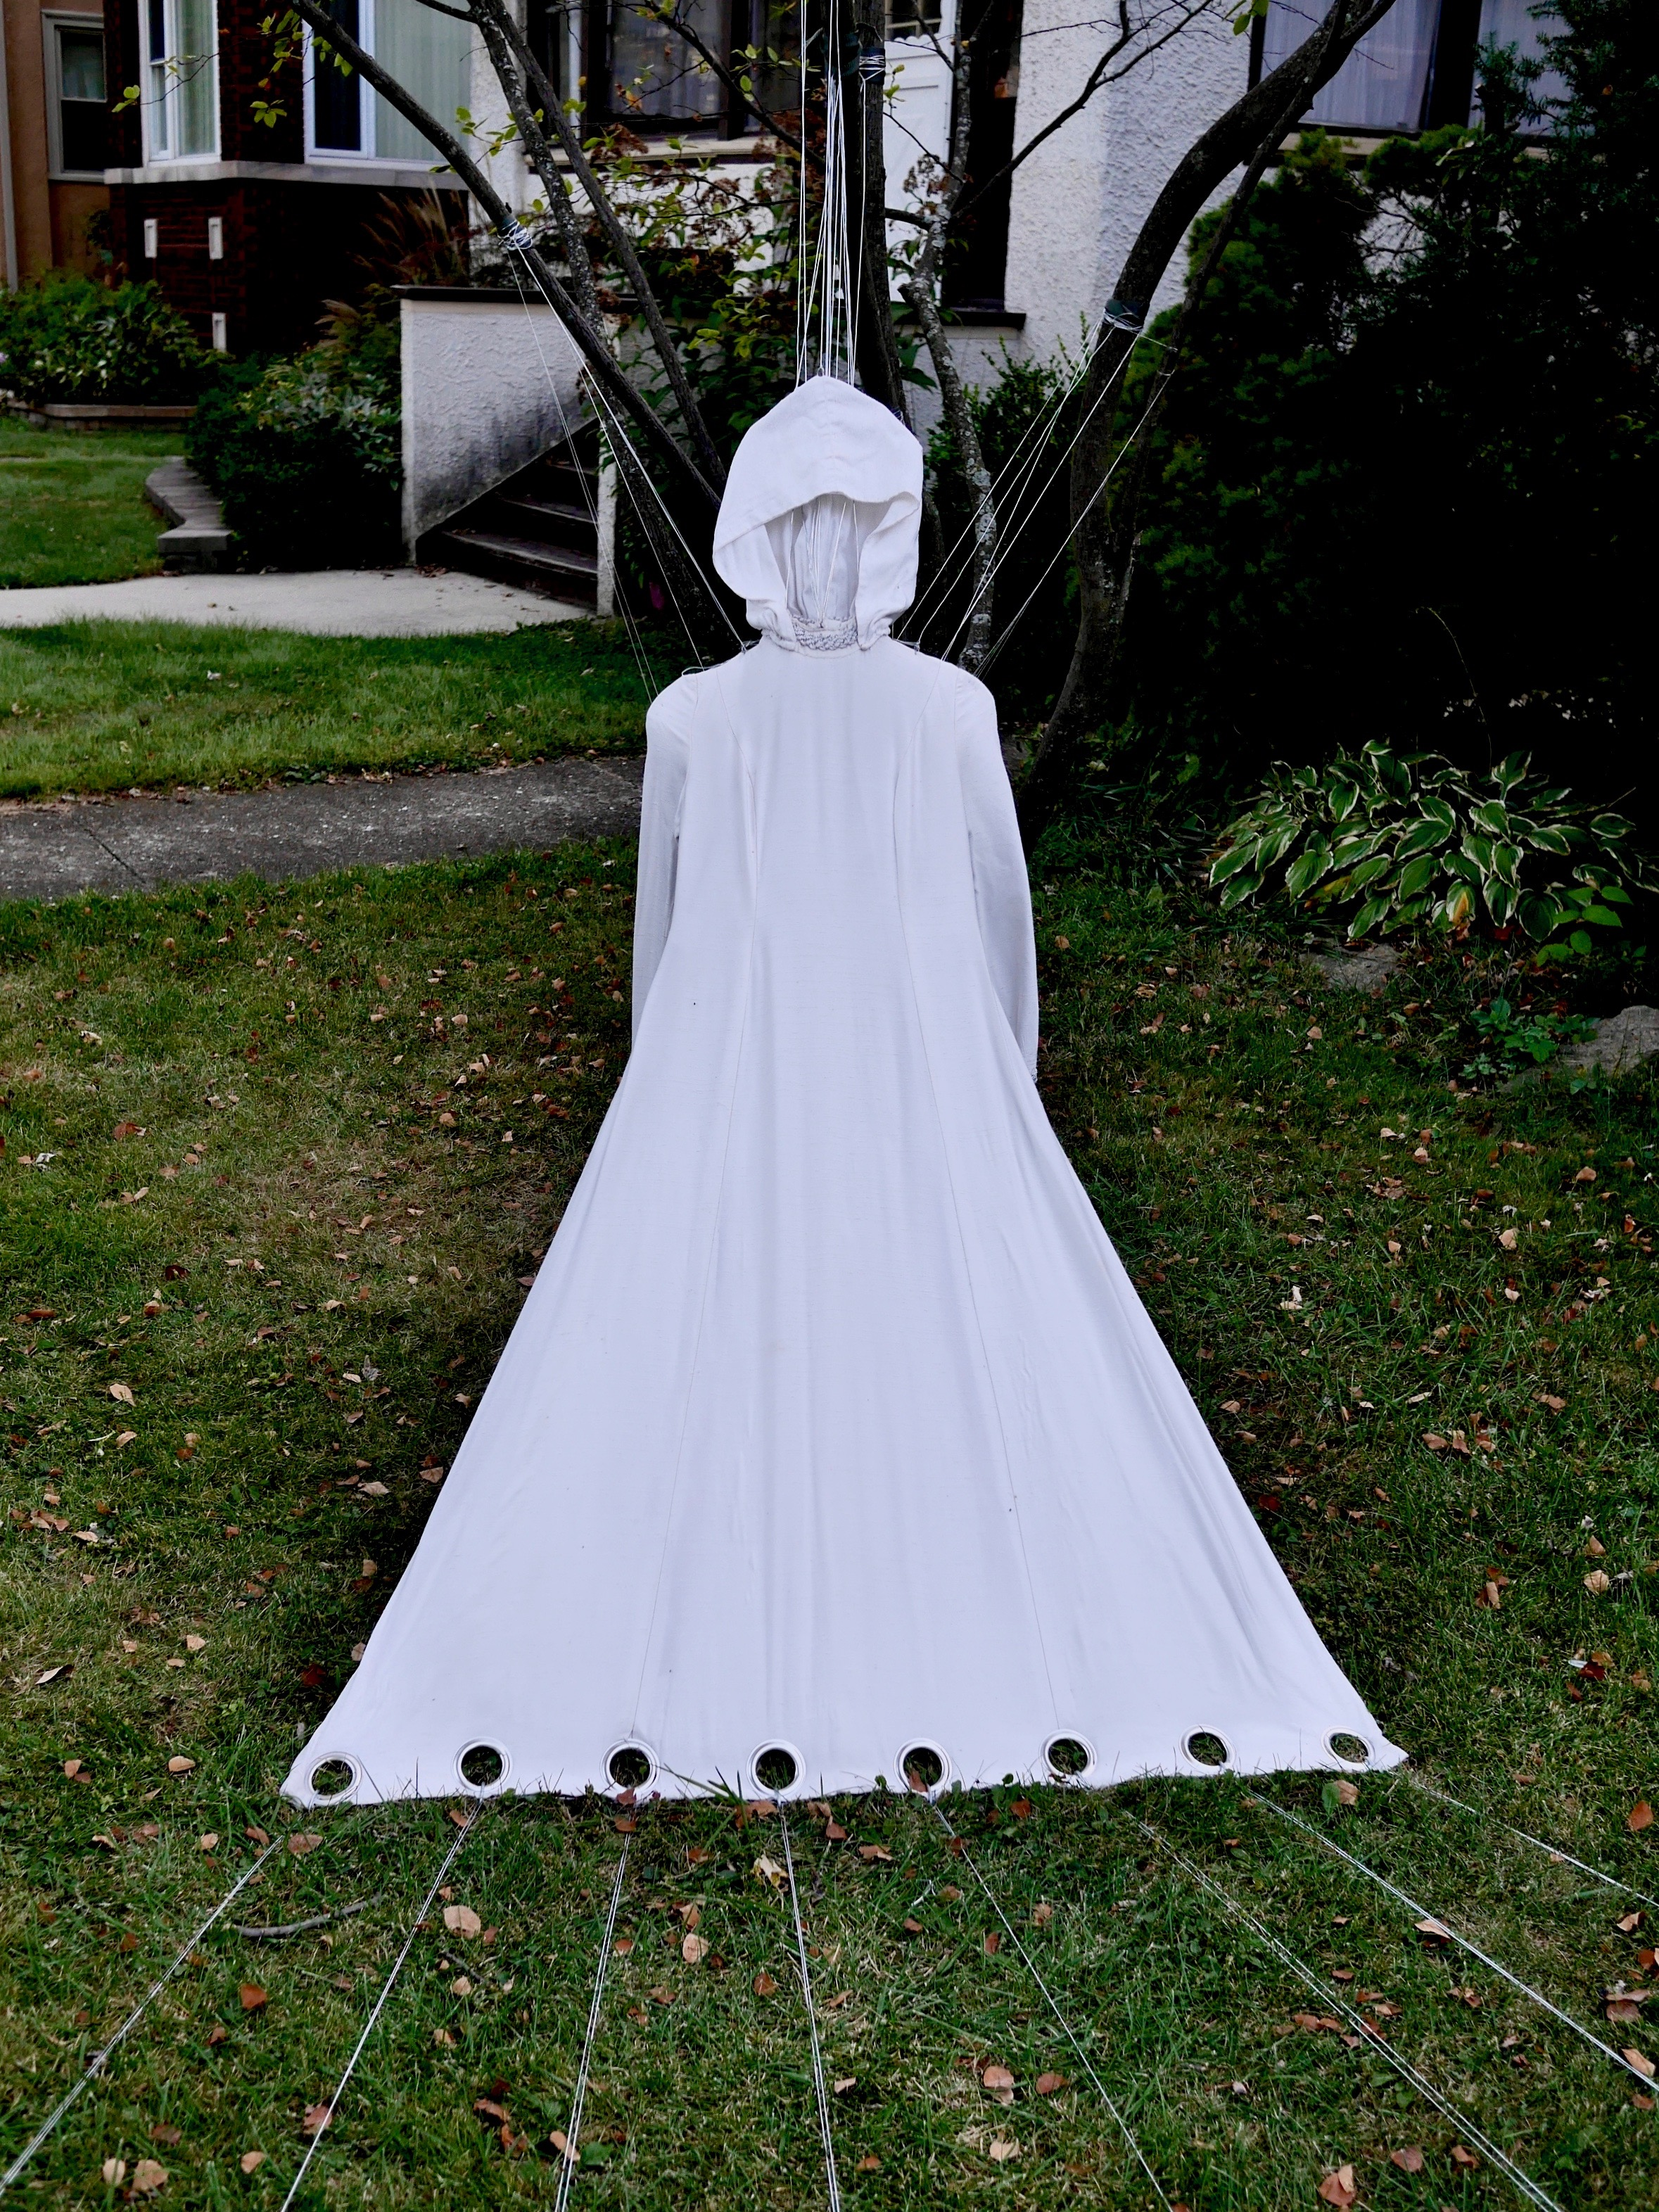 "Shelter Mother   65"" x 180"" x 100""  Vintage 1970's white dress, silver cord, wire, tent stakes  (2017)"